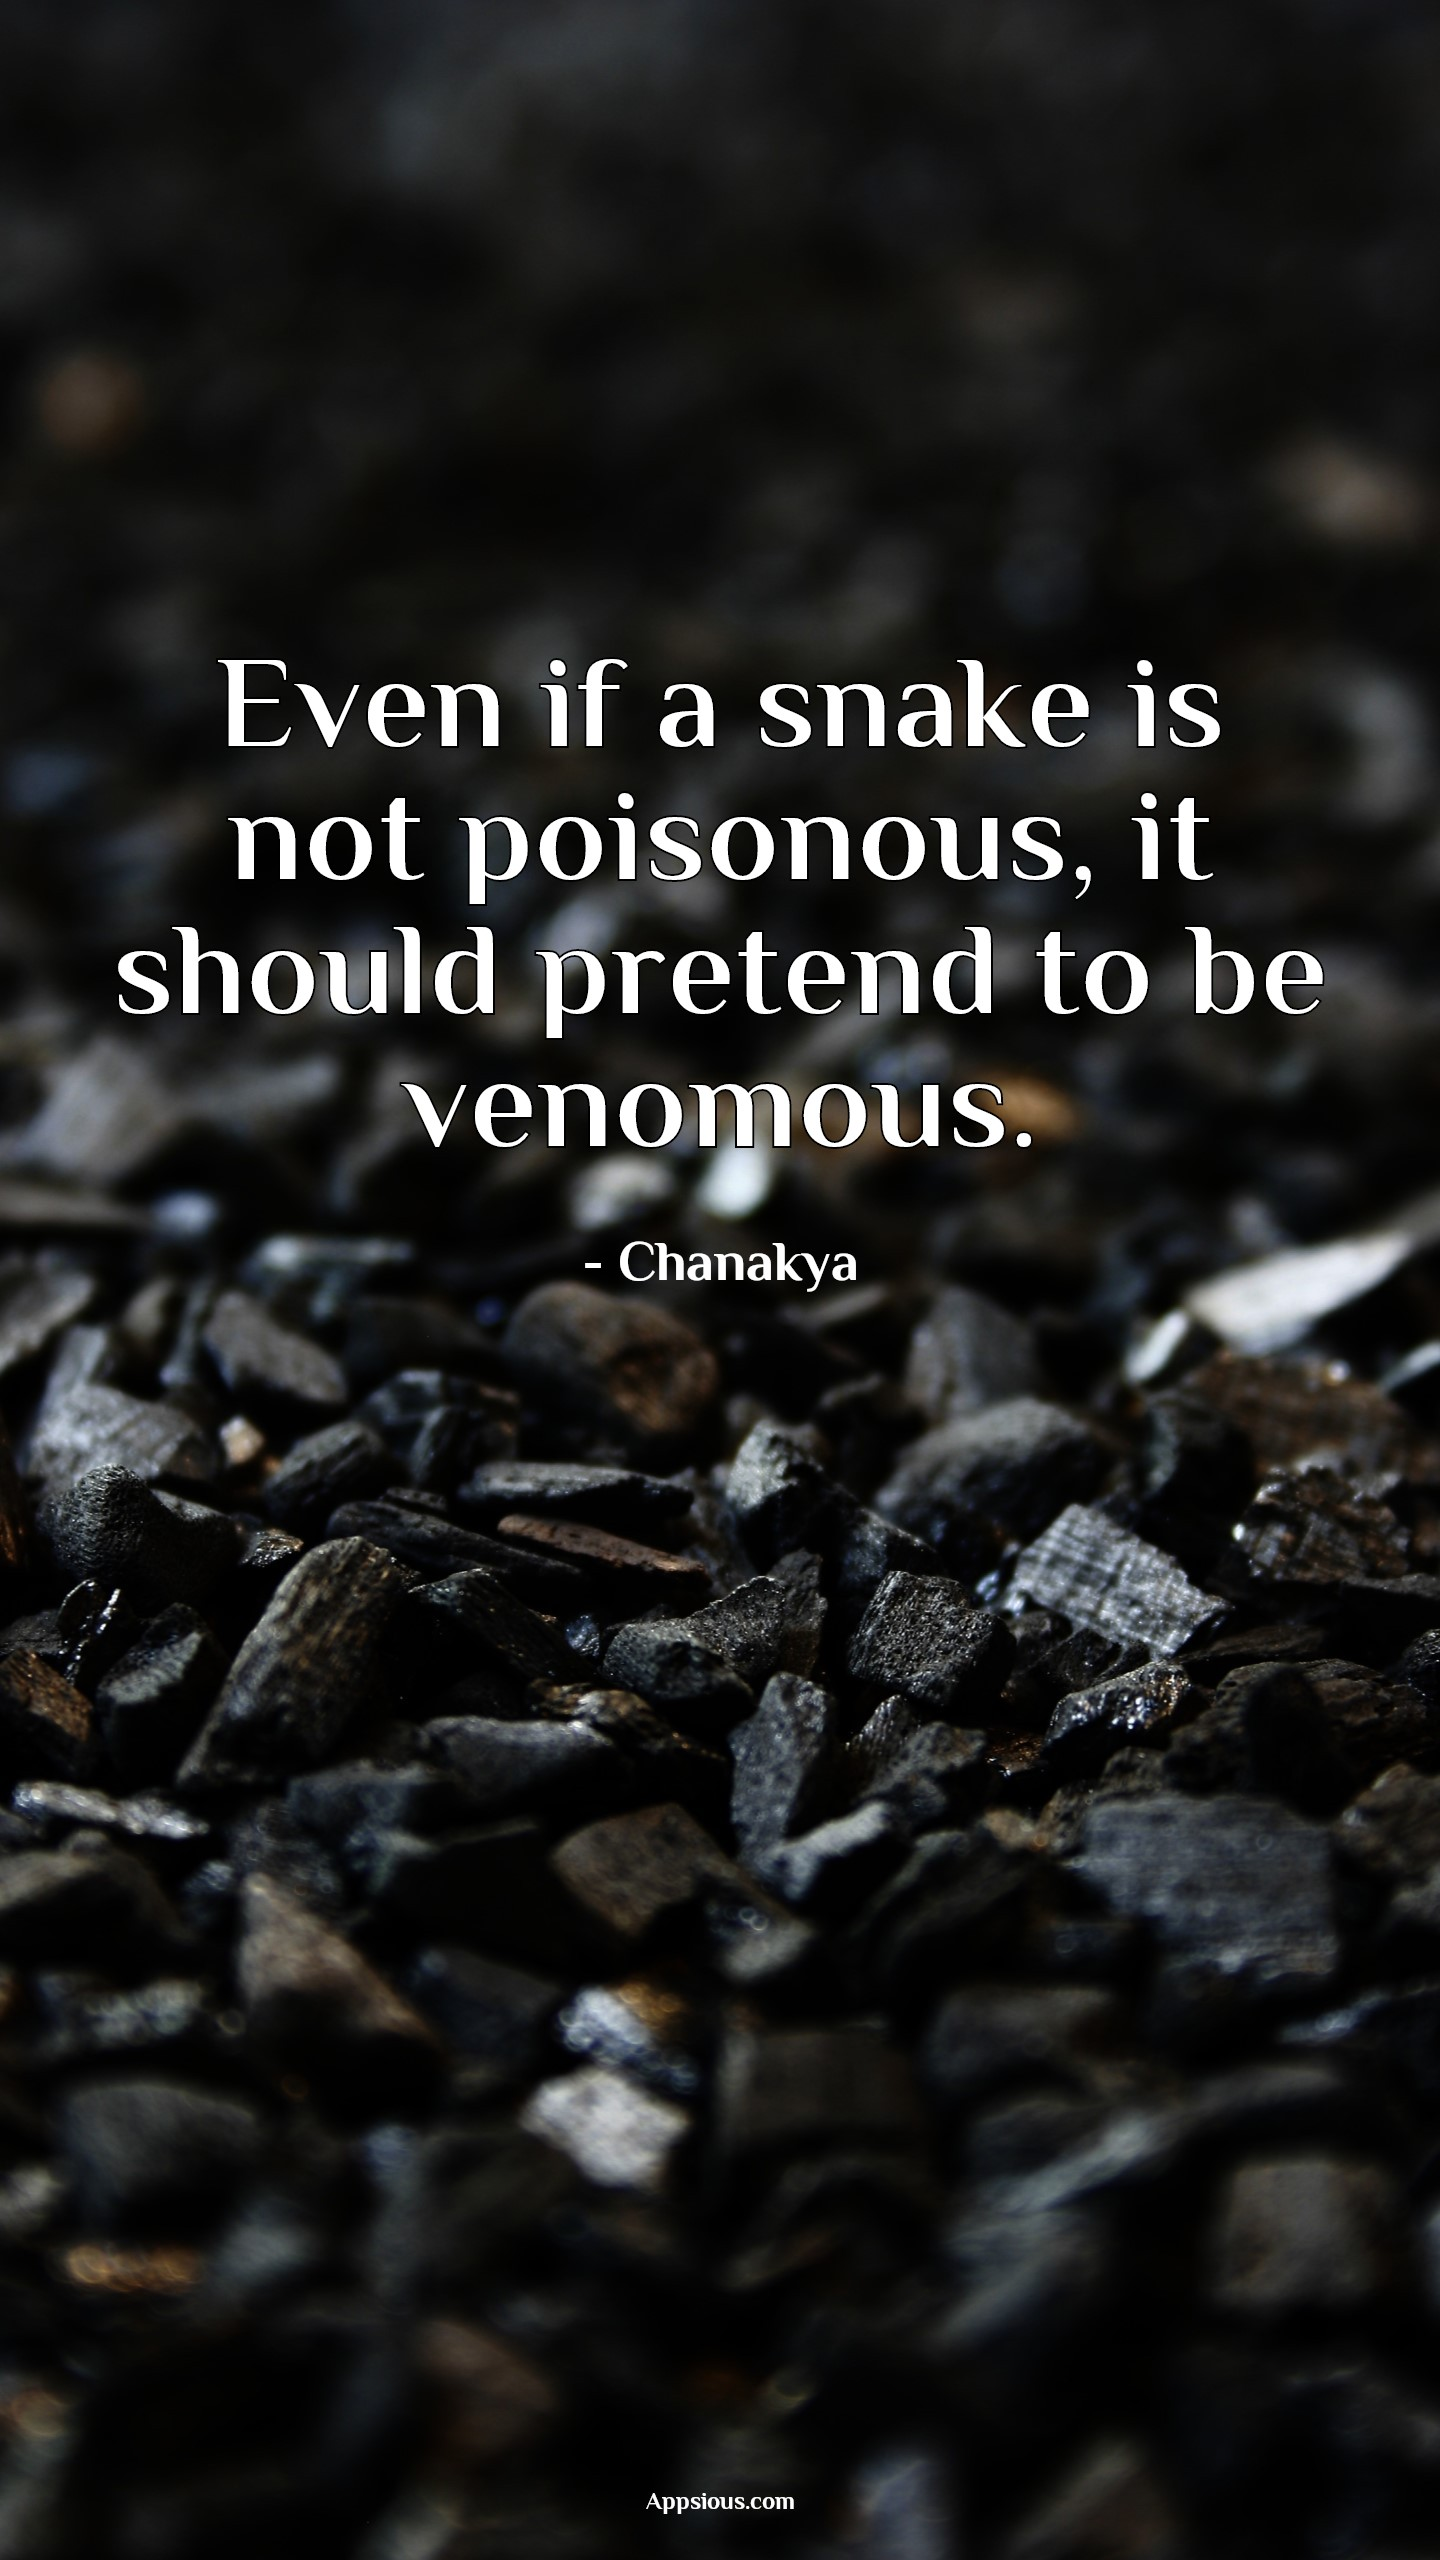 Even if a snake is not poisonous, it should pretend to be venomous.